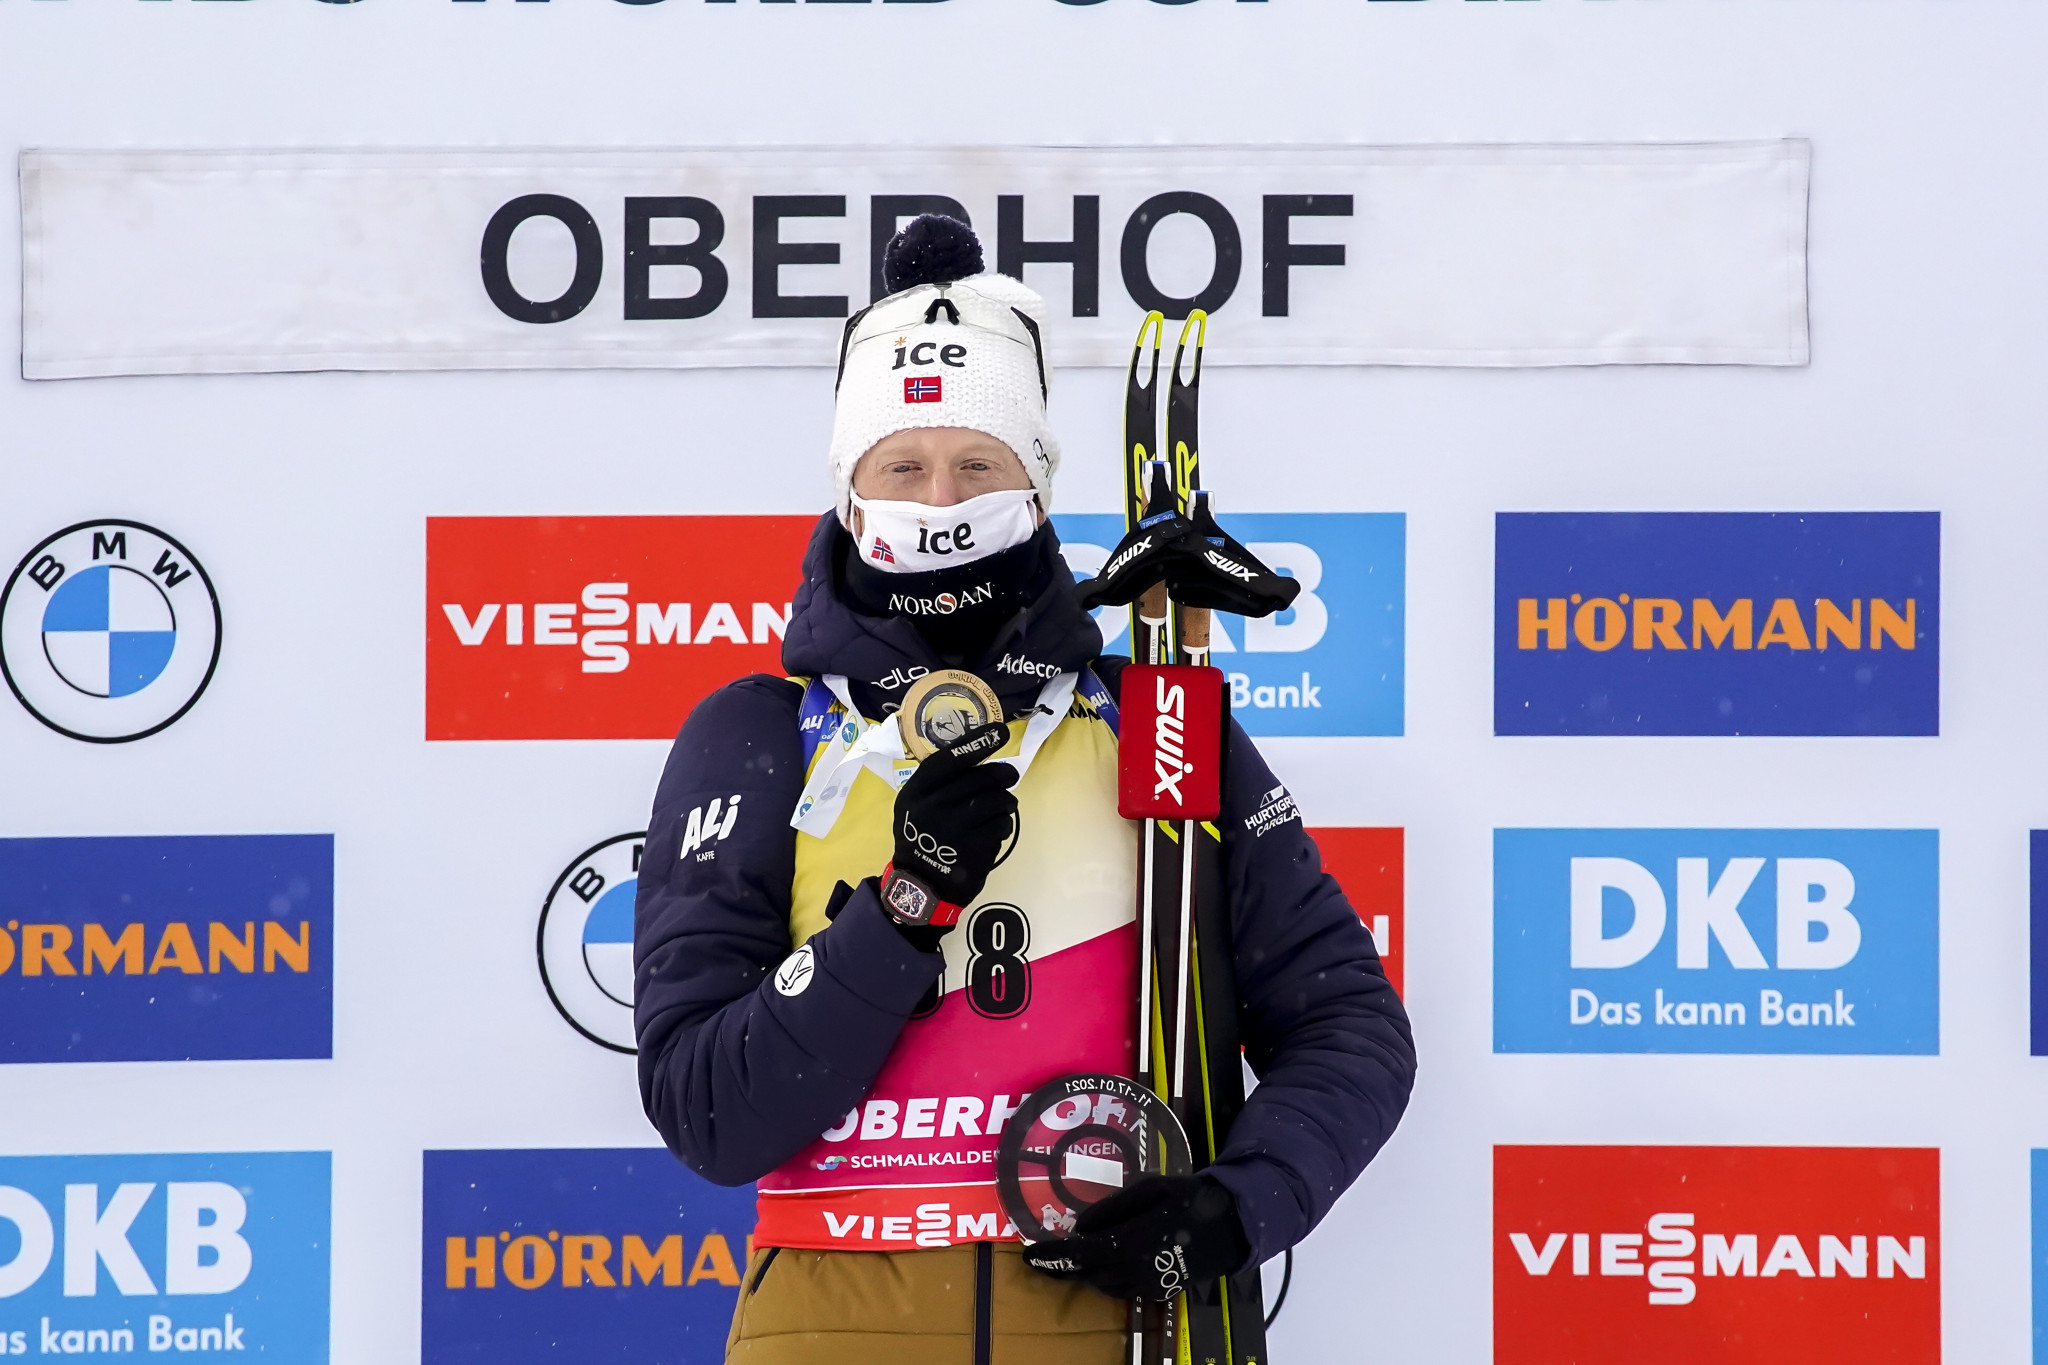 Bø claims another win in Oberhof to extend overall IBU World Cup lead